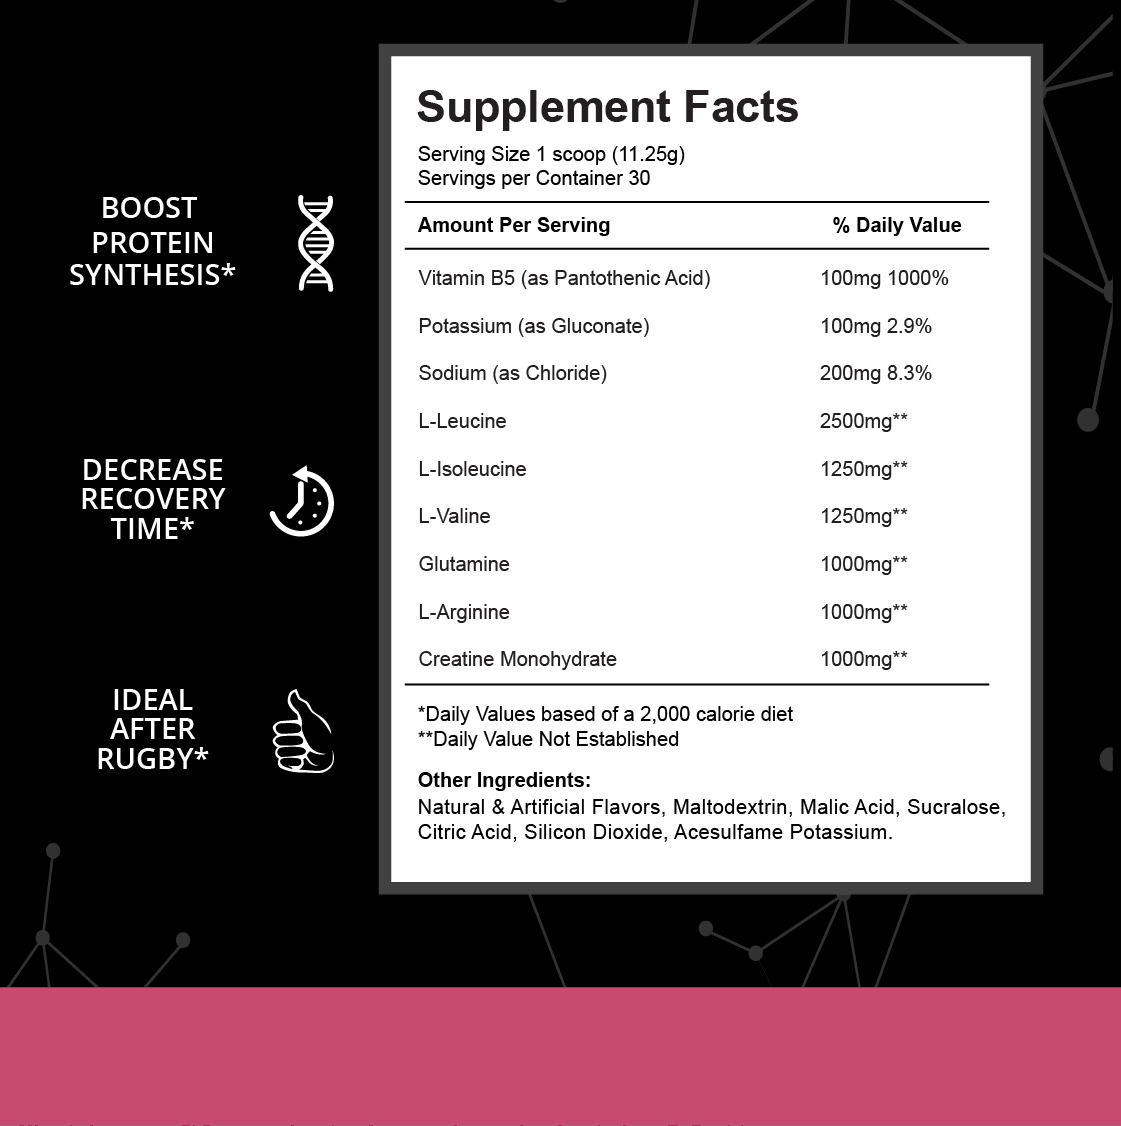 Post Rugby - supplements facts panel